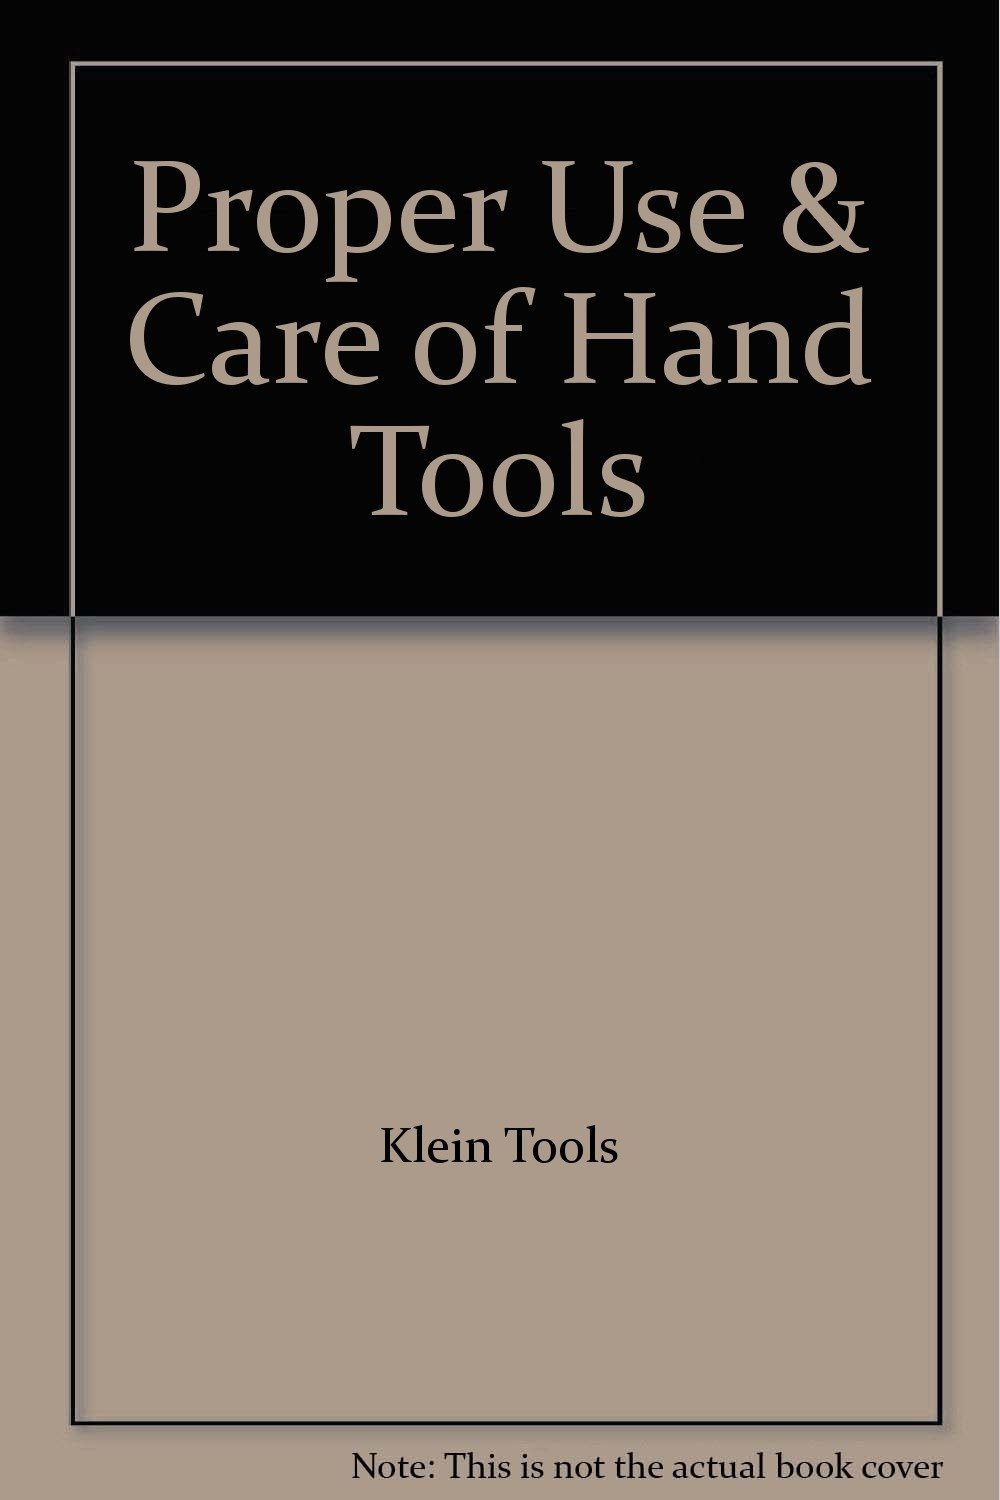 Proper Use & Care of Hand Tools